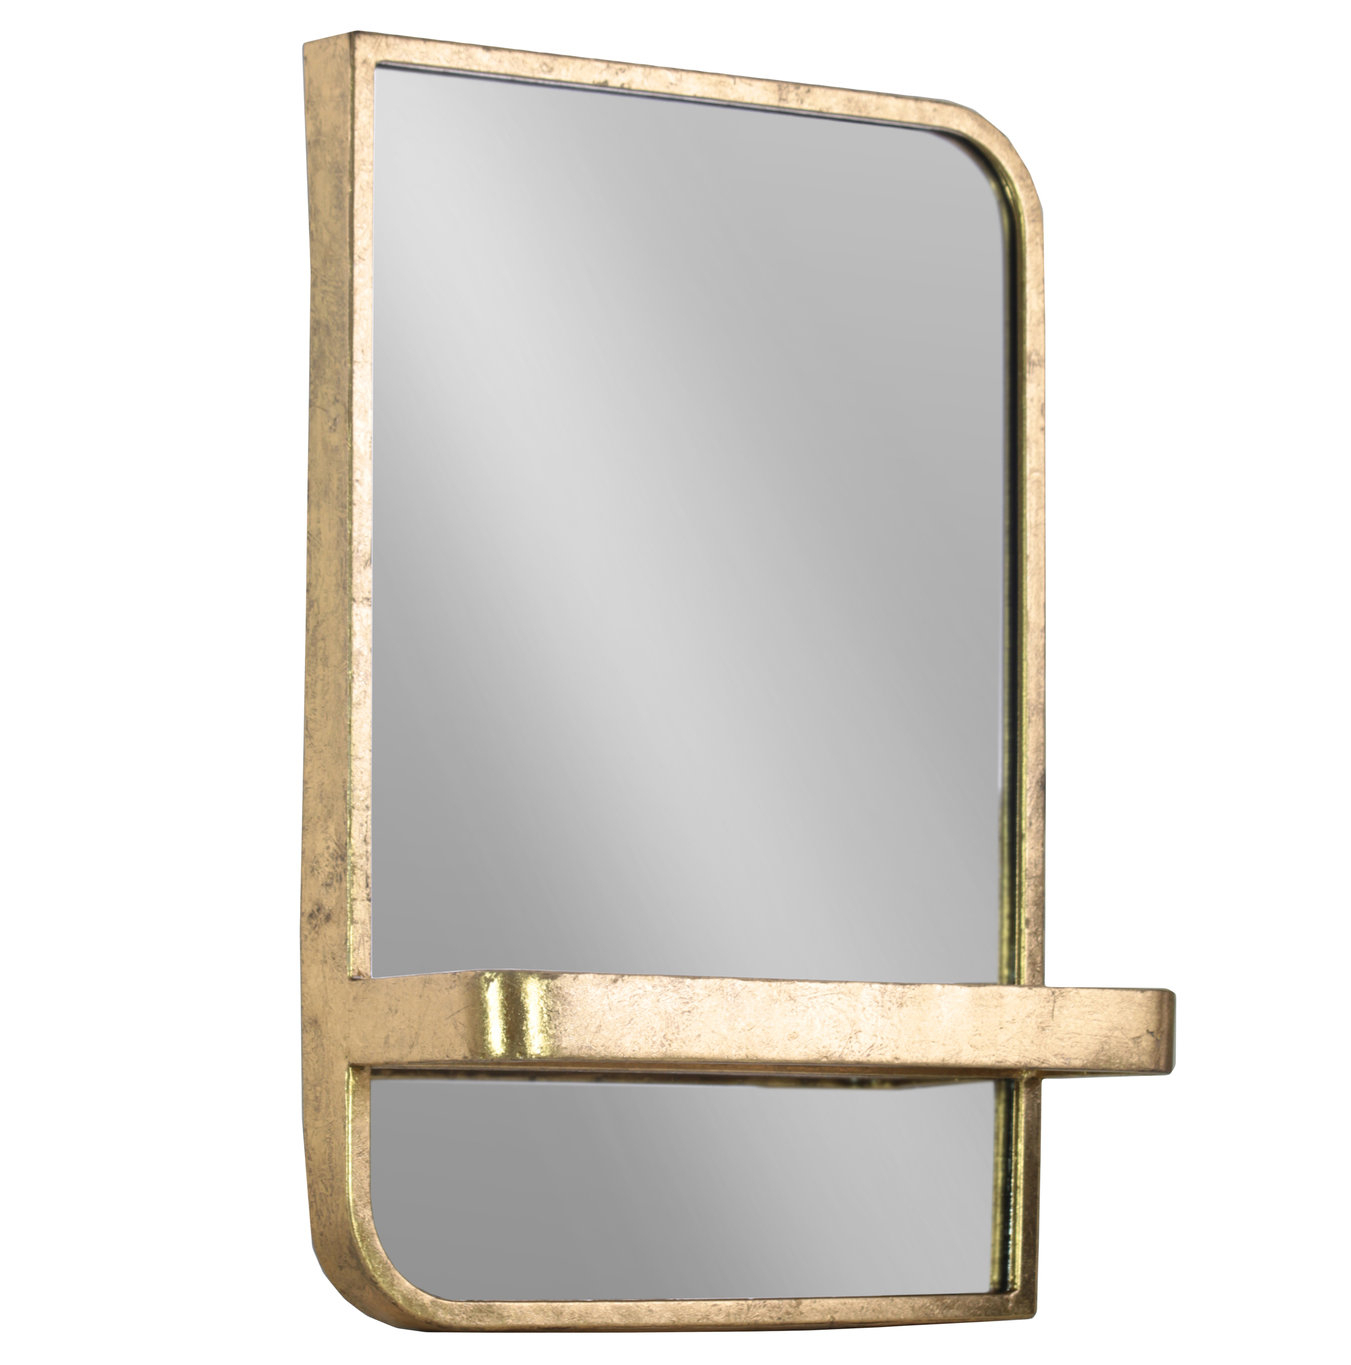 Fausto Rectangle Metal Wall Mirror With Shelf Throughout Bem Decorative Wall Mirrors (View 13 of 20)